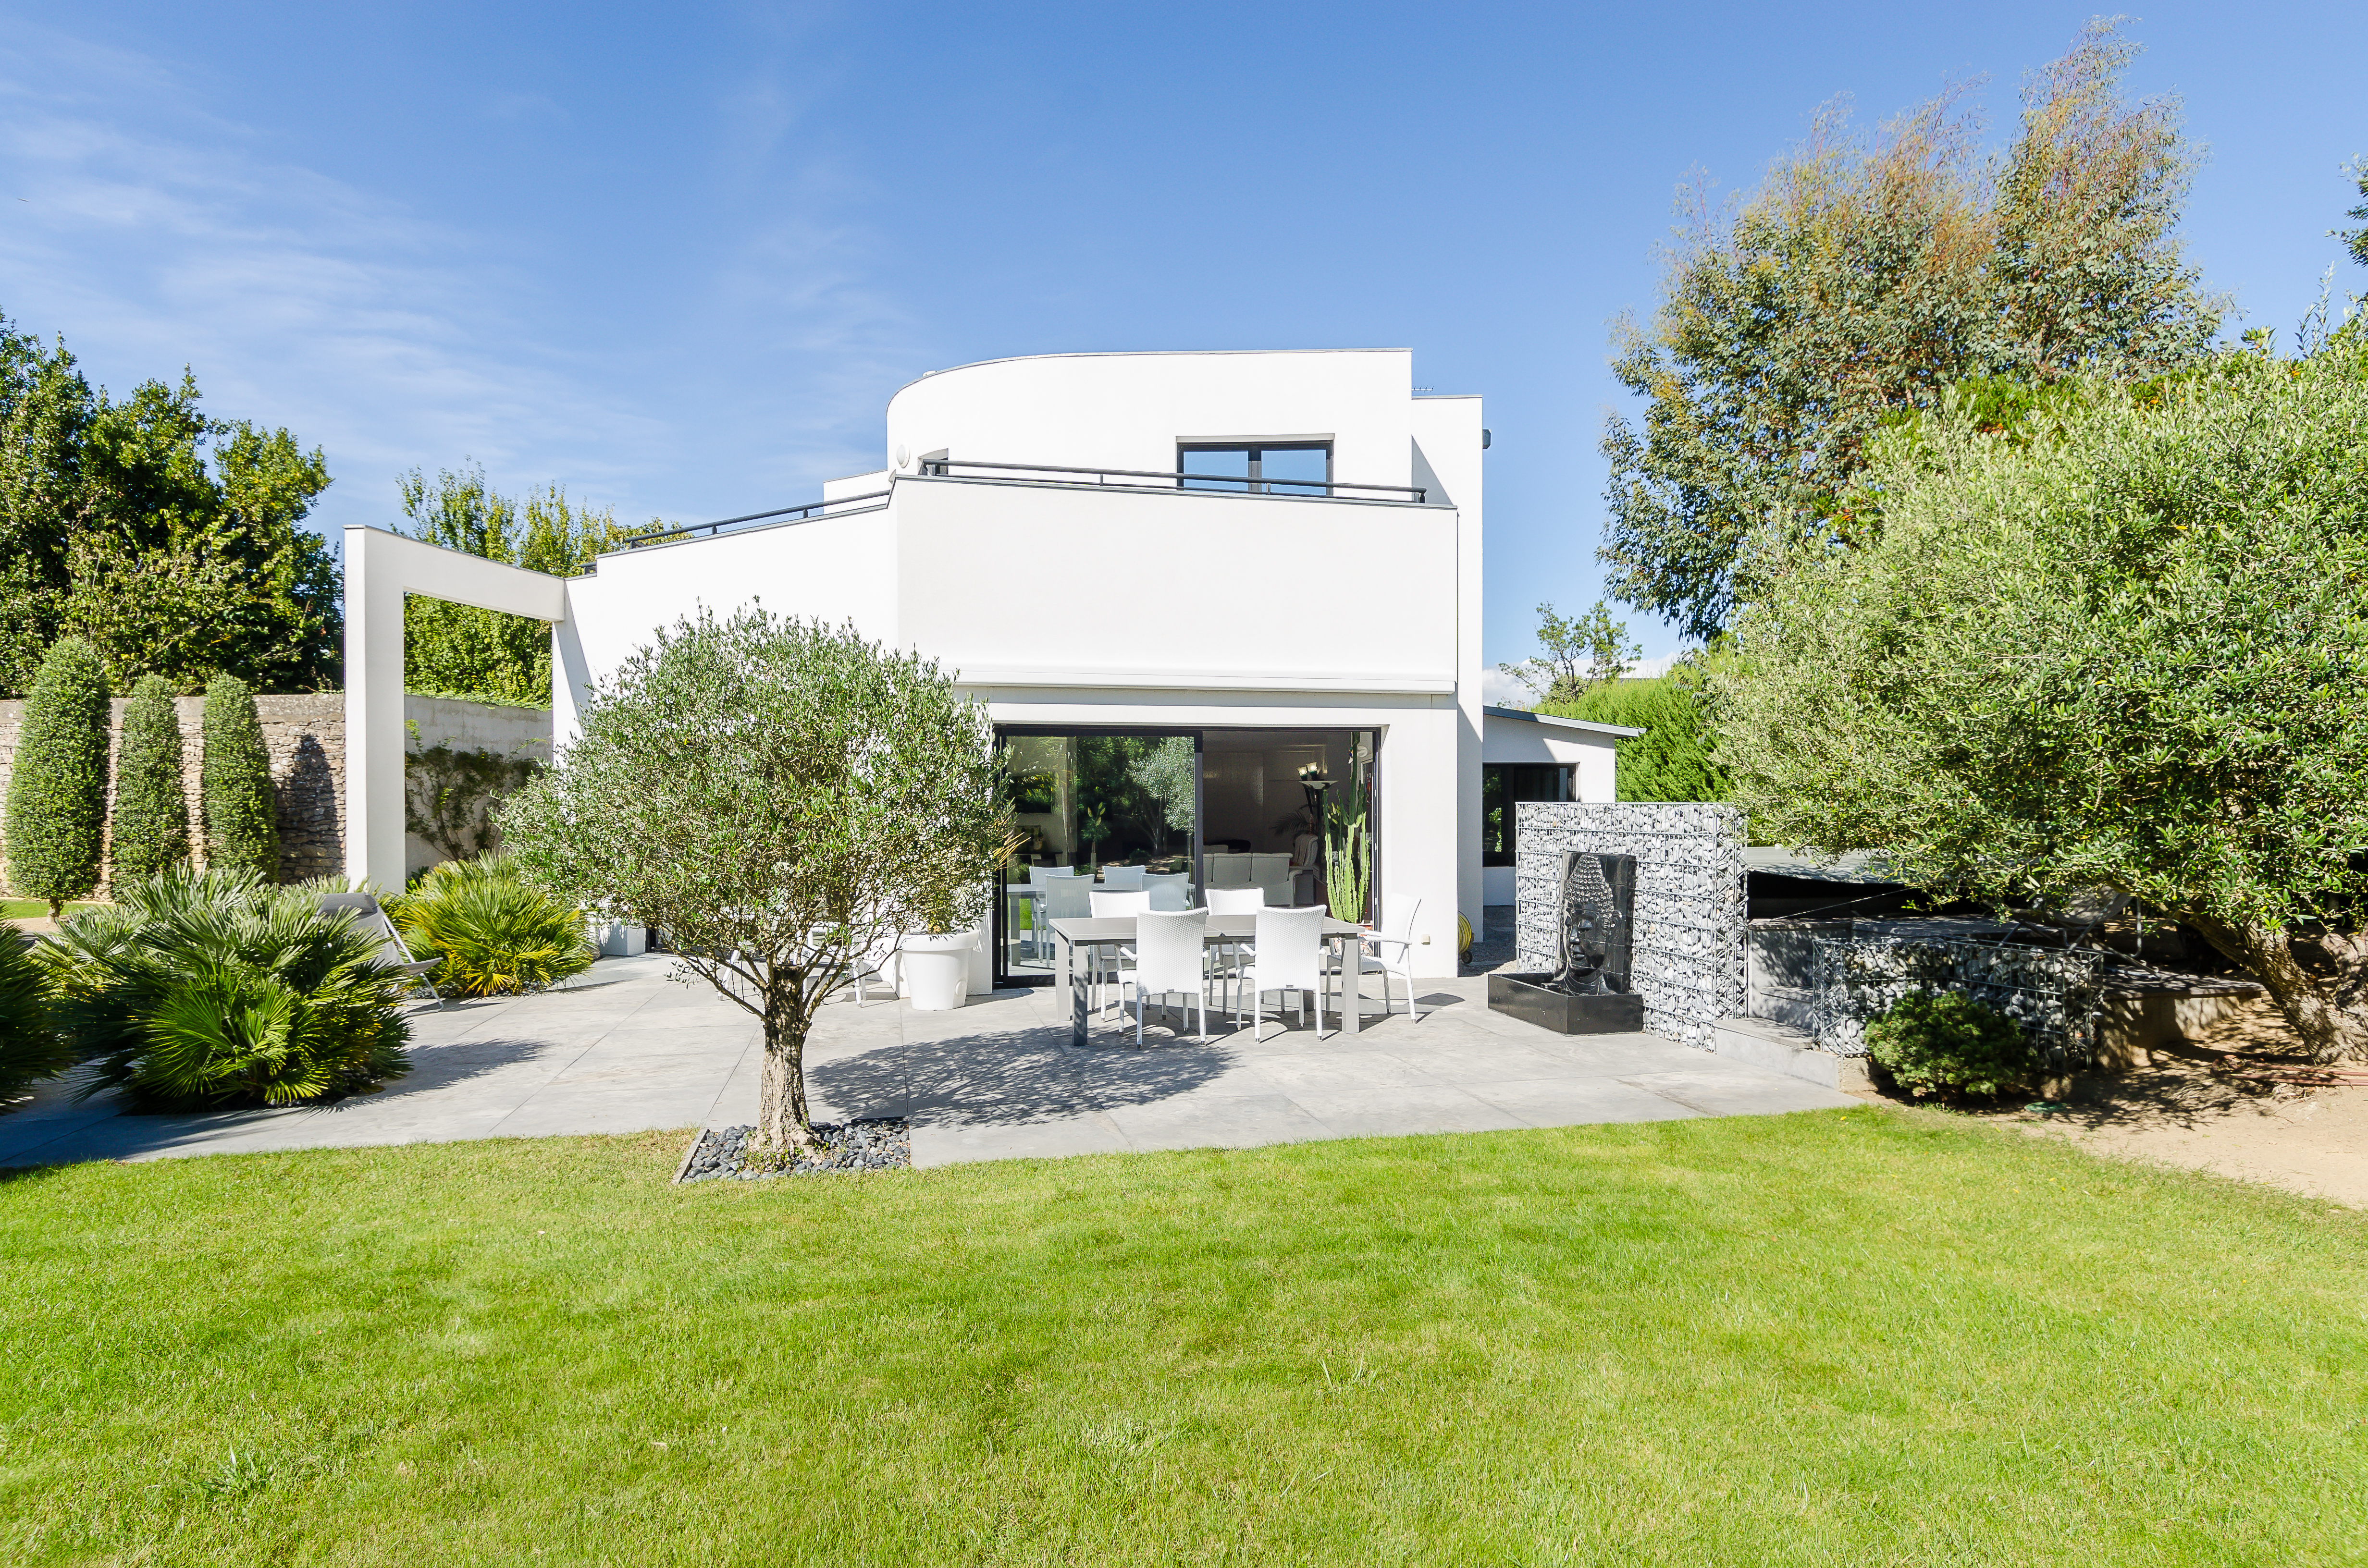 Chambre Hote La Baule Property In La Baule Offers Discreet Chic On France S West Coast